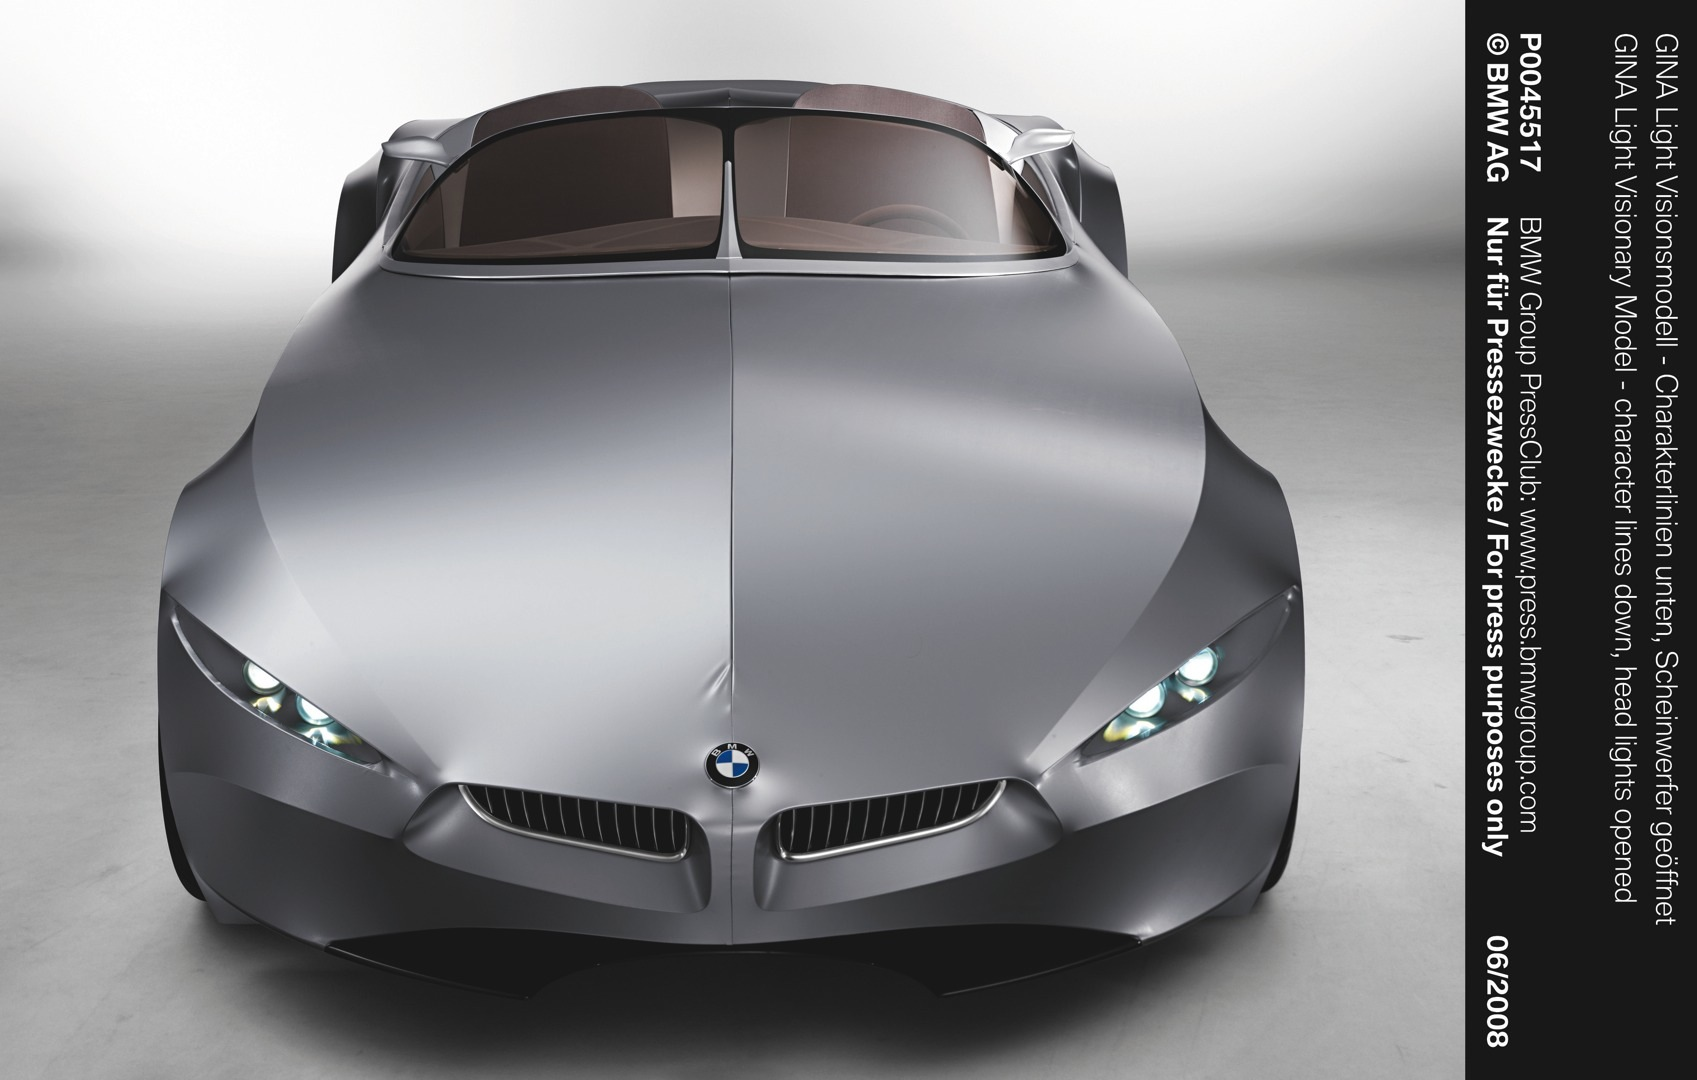 BMW GINA Concept To Be Showcased At Dream Cars